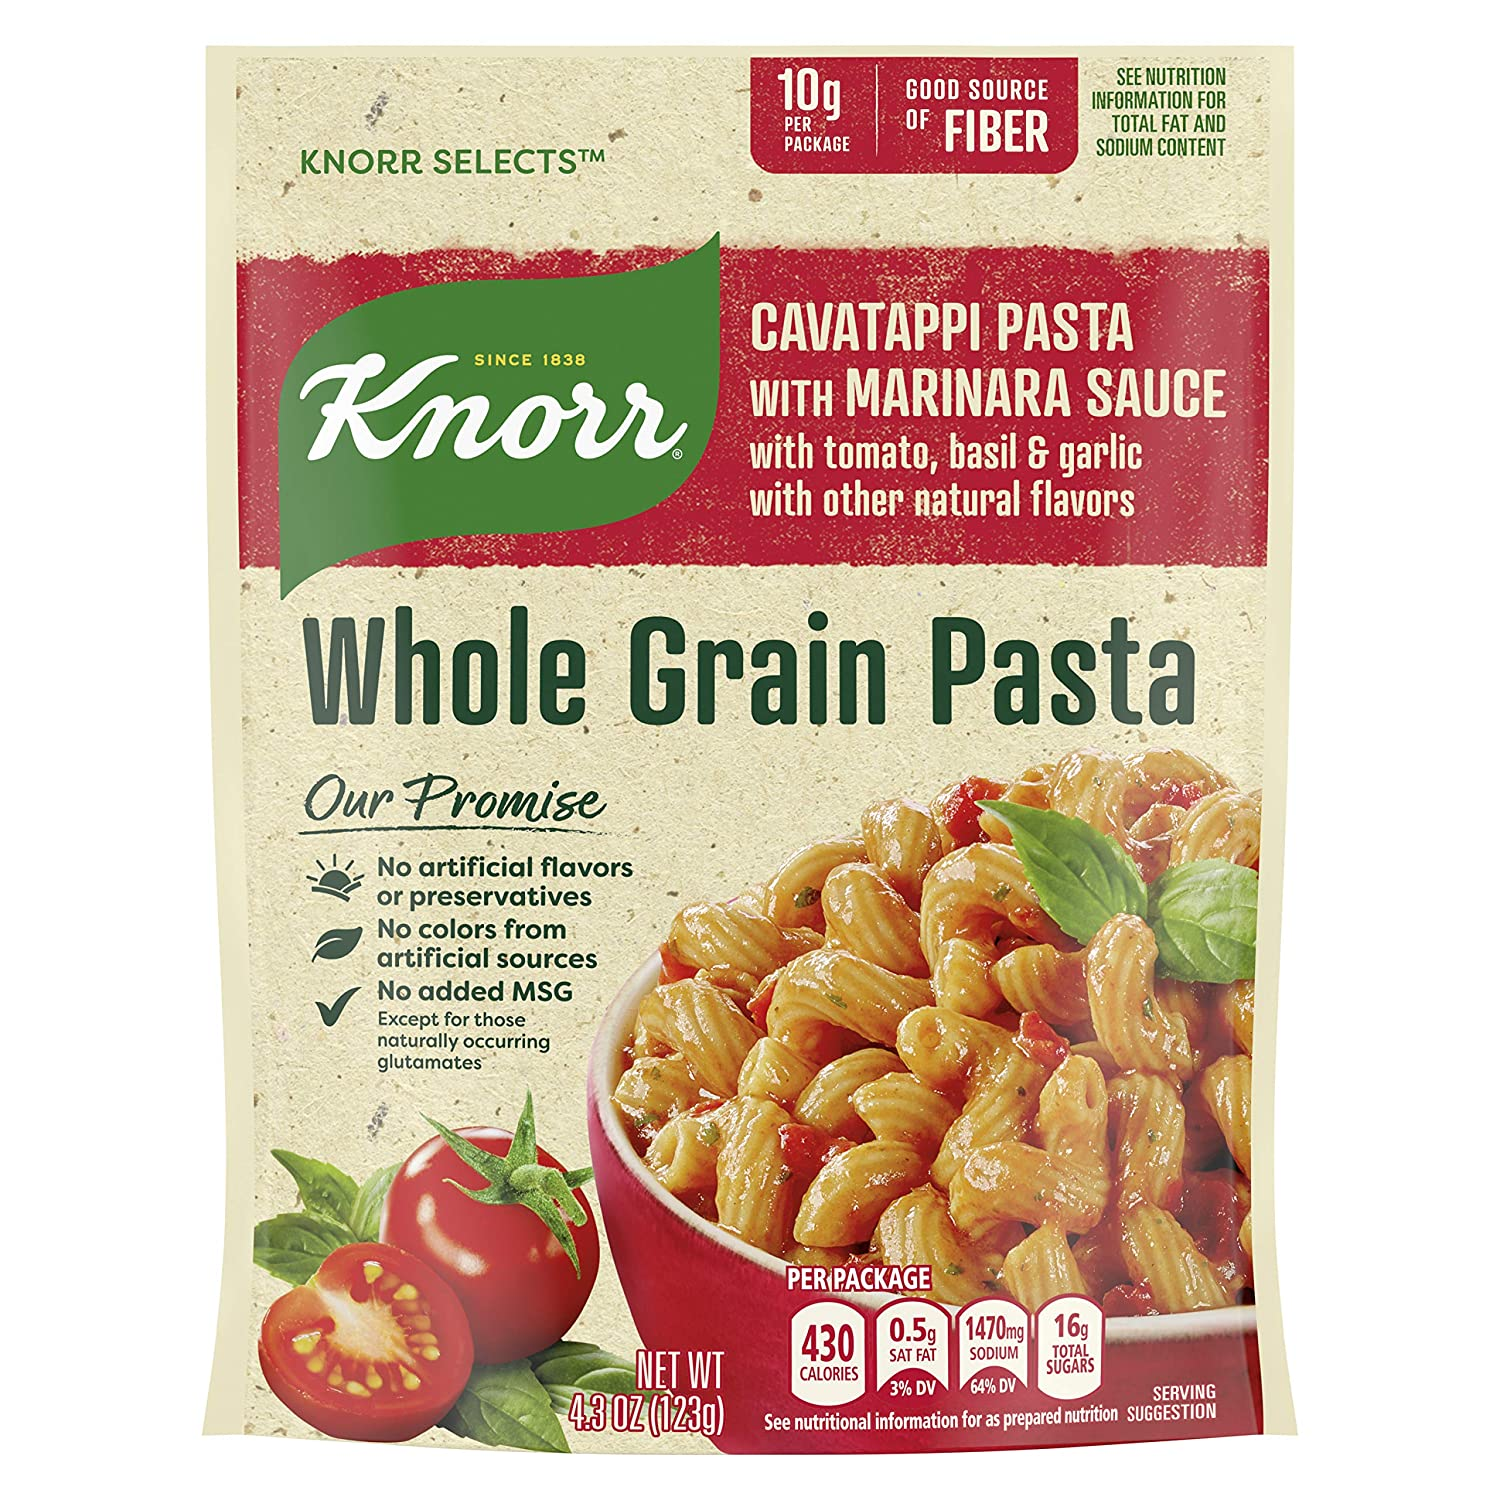 Knorr Selects Whole Grain Pasta For a Delicious Pasta Side Dish Cavatappi with Marinara Sauce Good Source of Fiber 4.3 oz